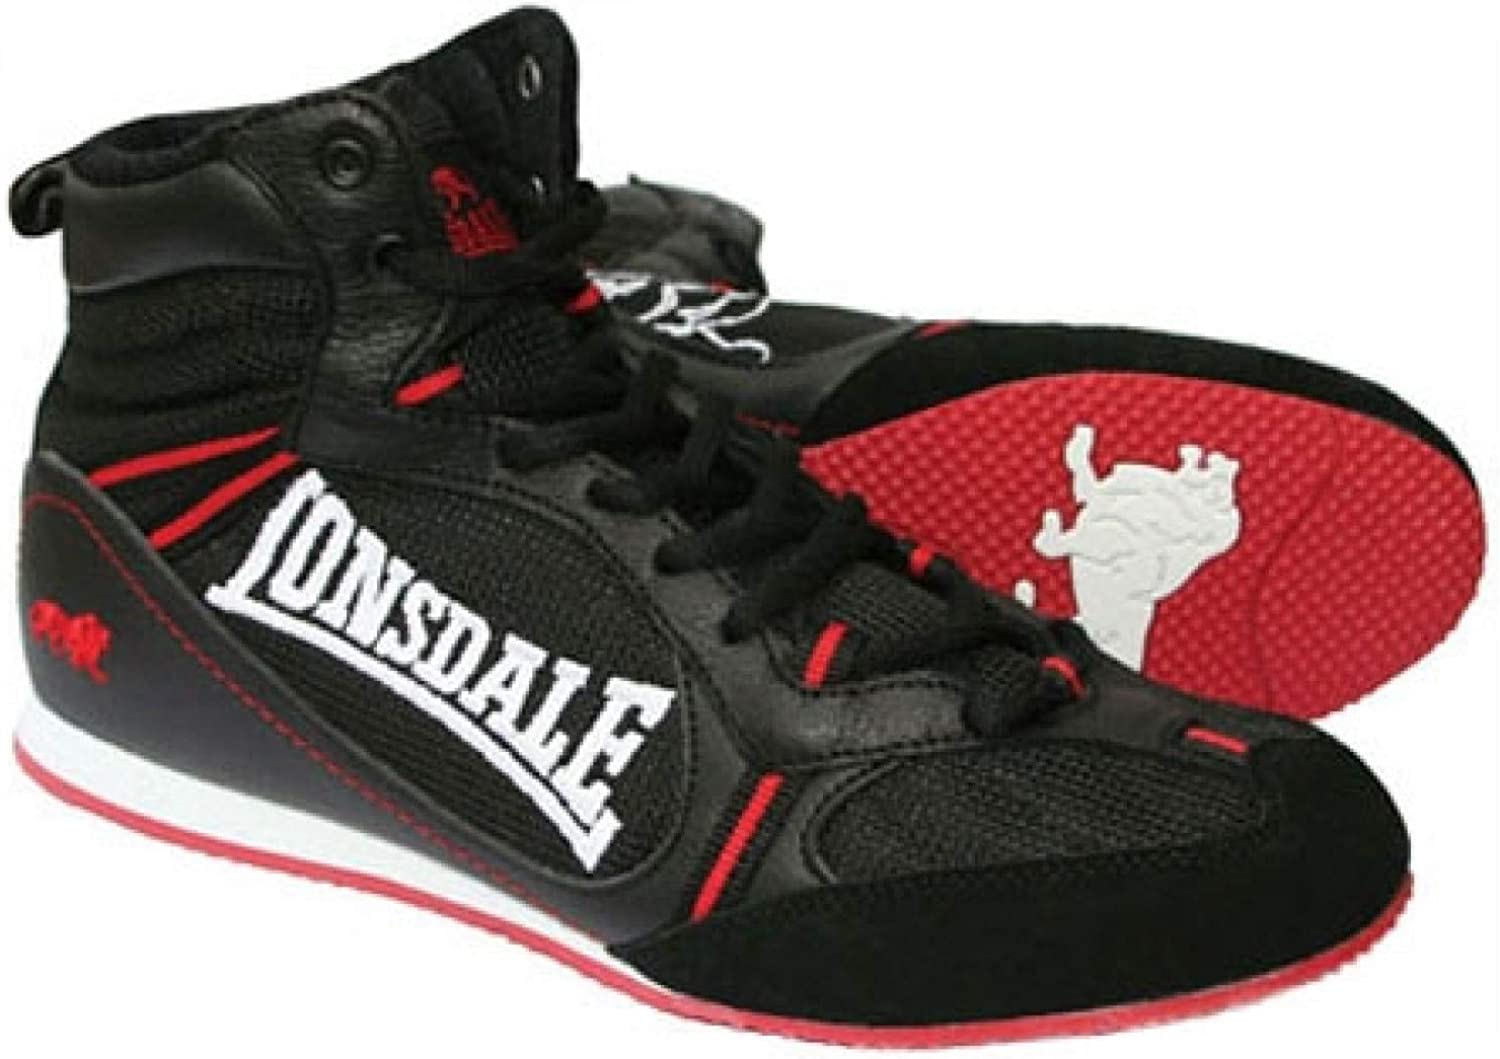 49,5 14 Lonsdale London Boxingboots Typhoon